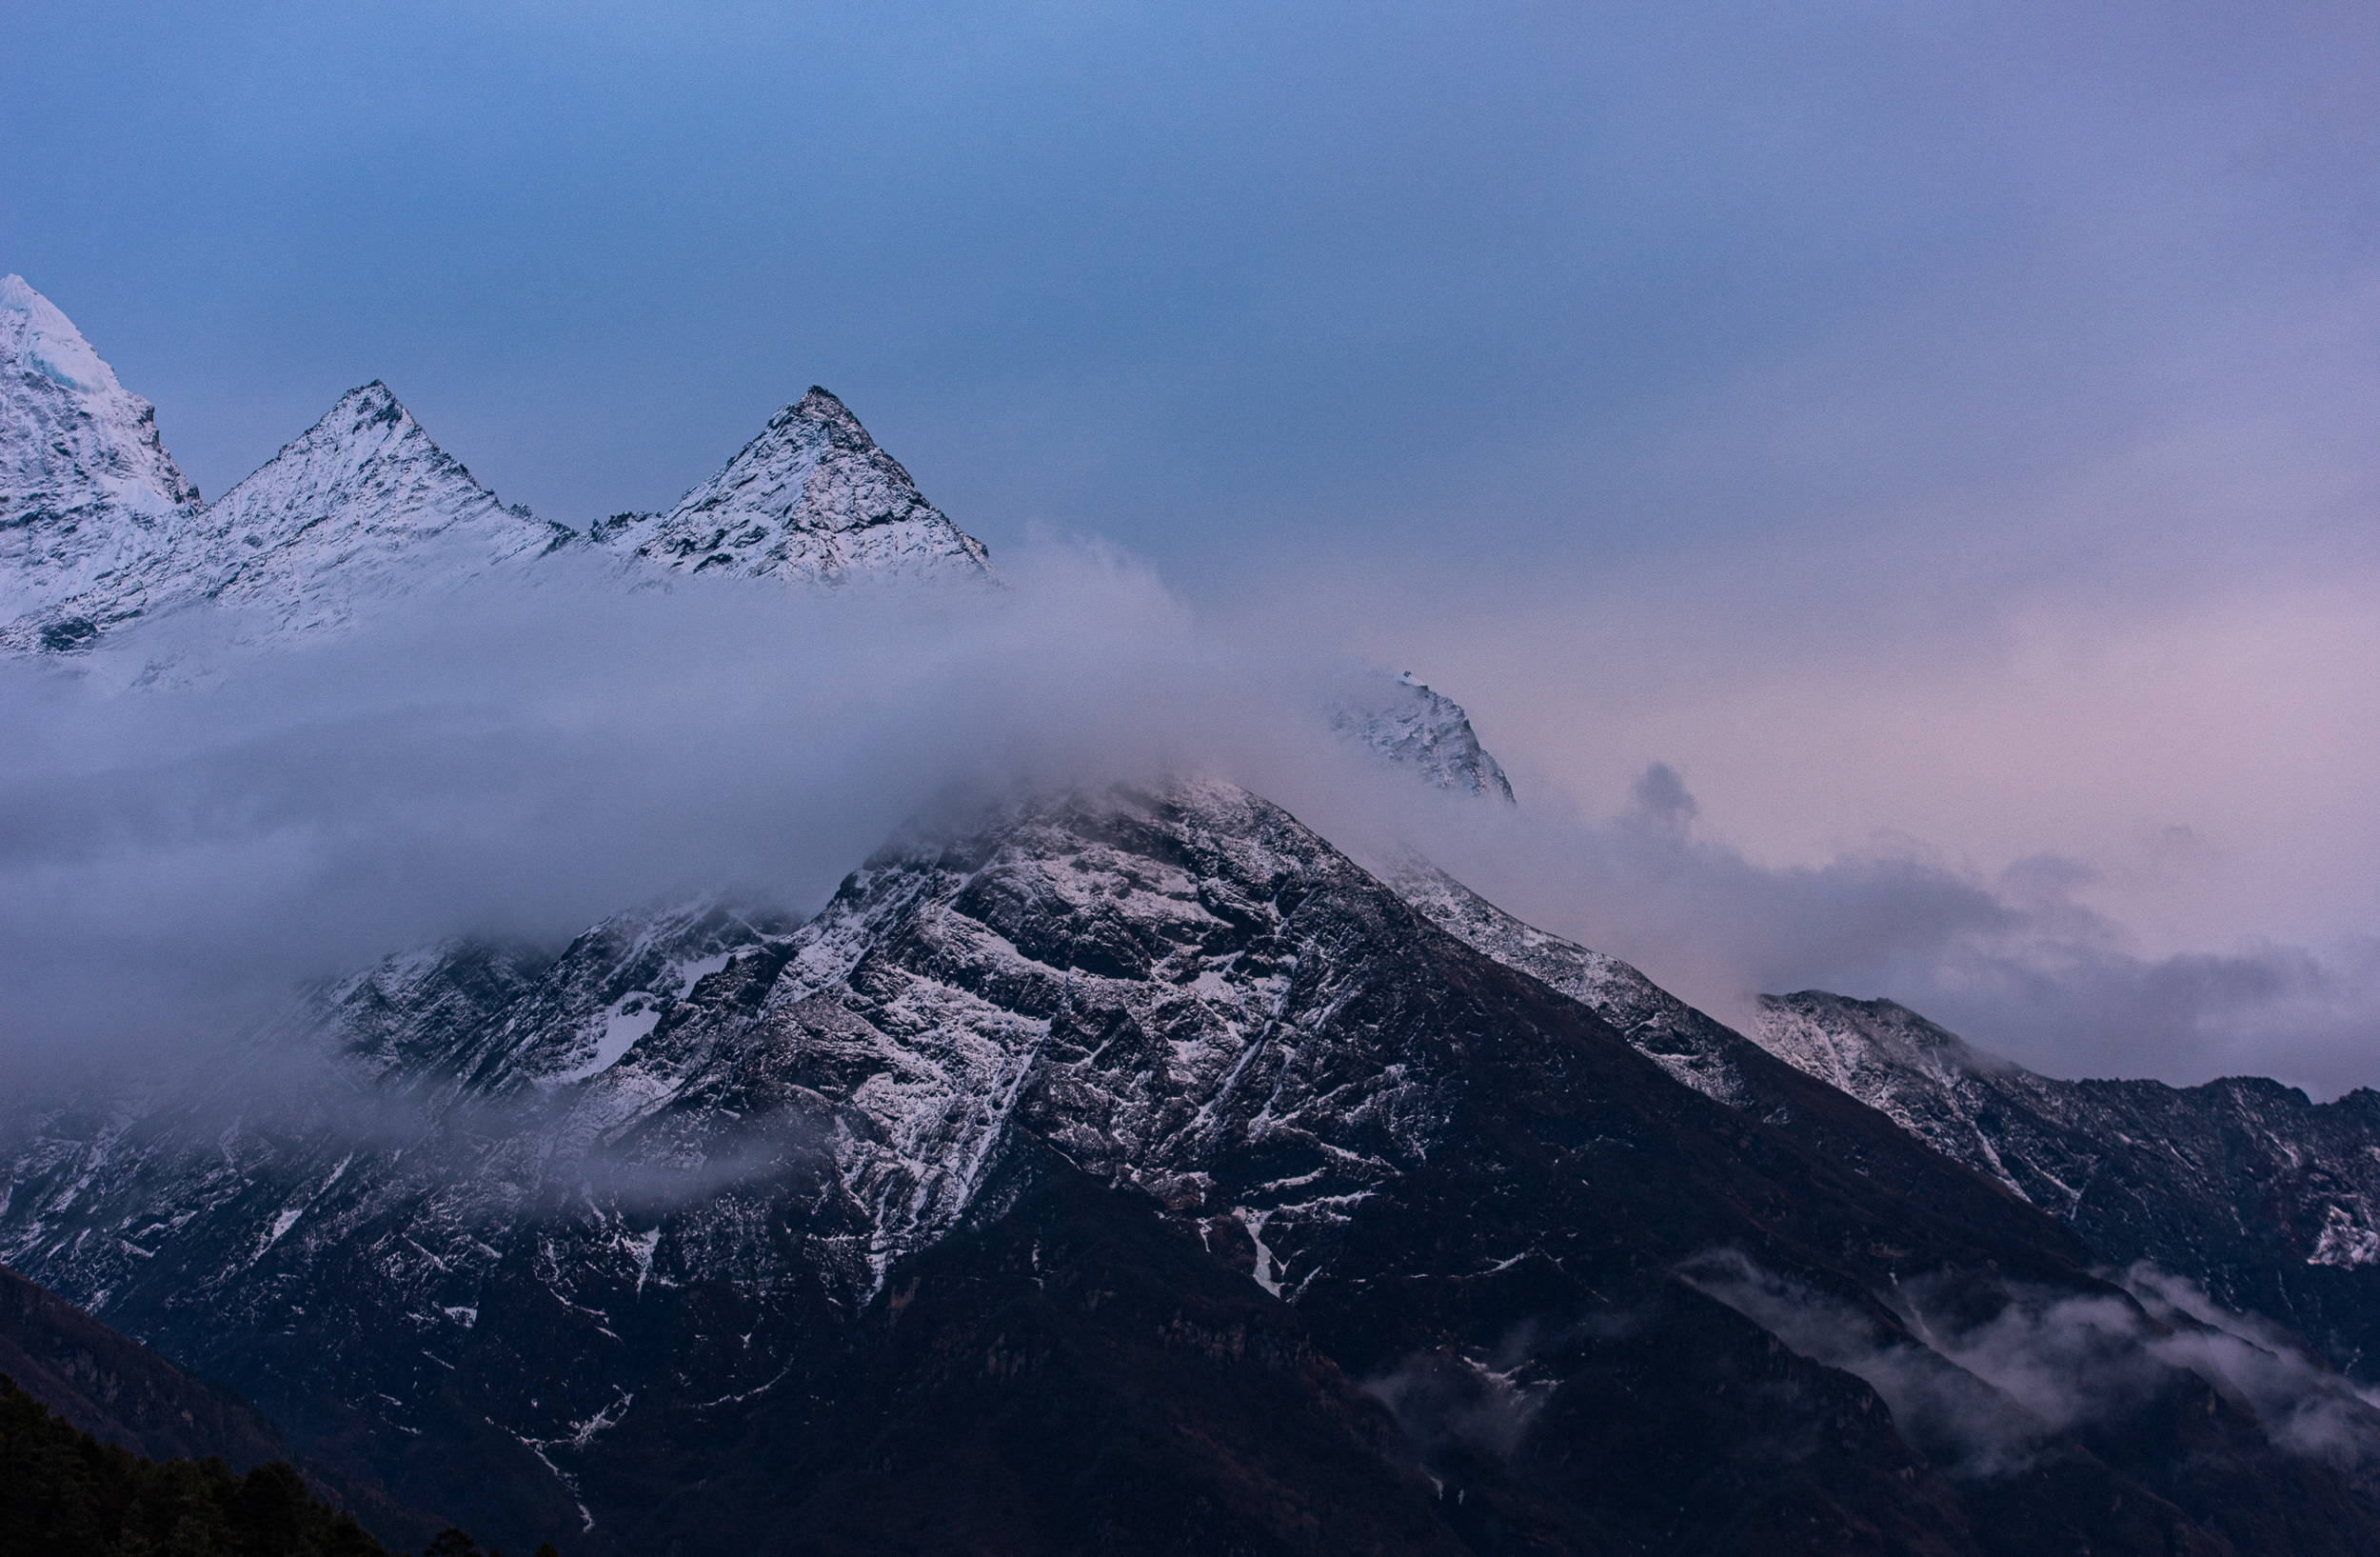 Nepal_EverestBaseCamp_2019_TaraShupe_Photography_DSC_3752.jpg